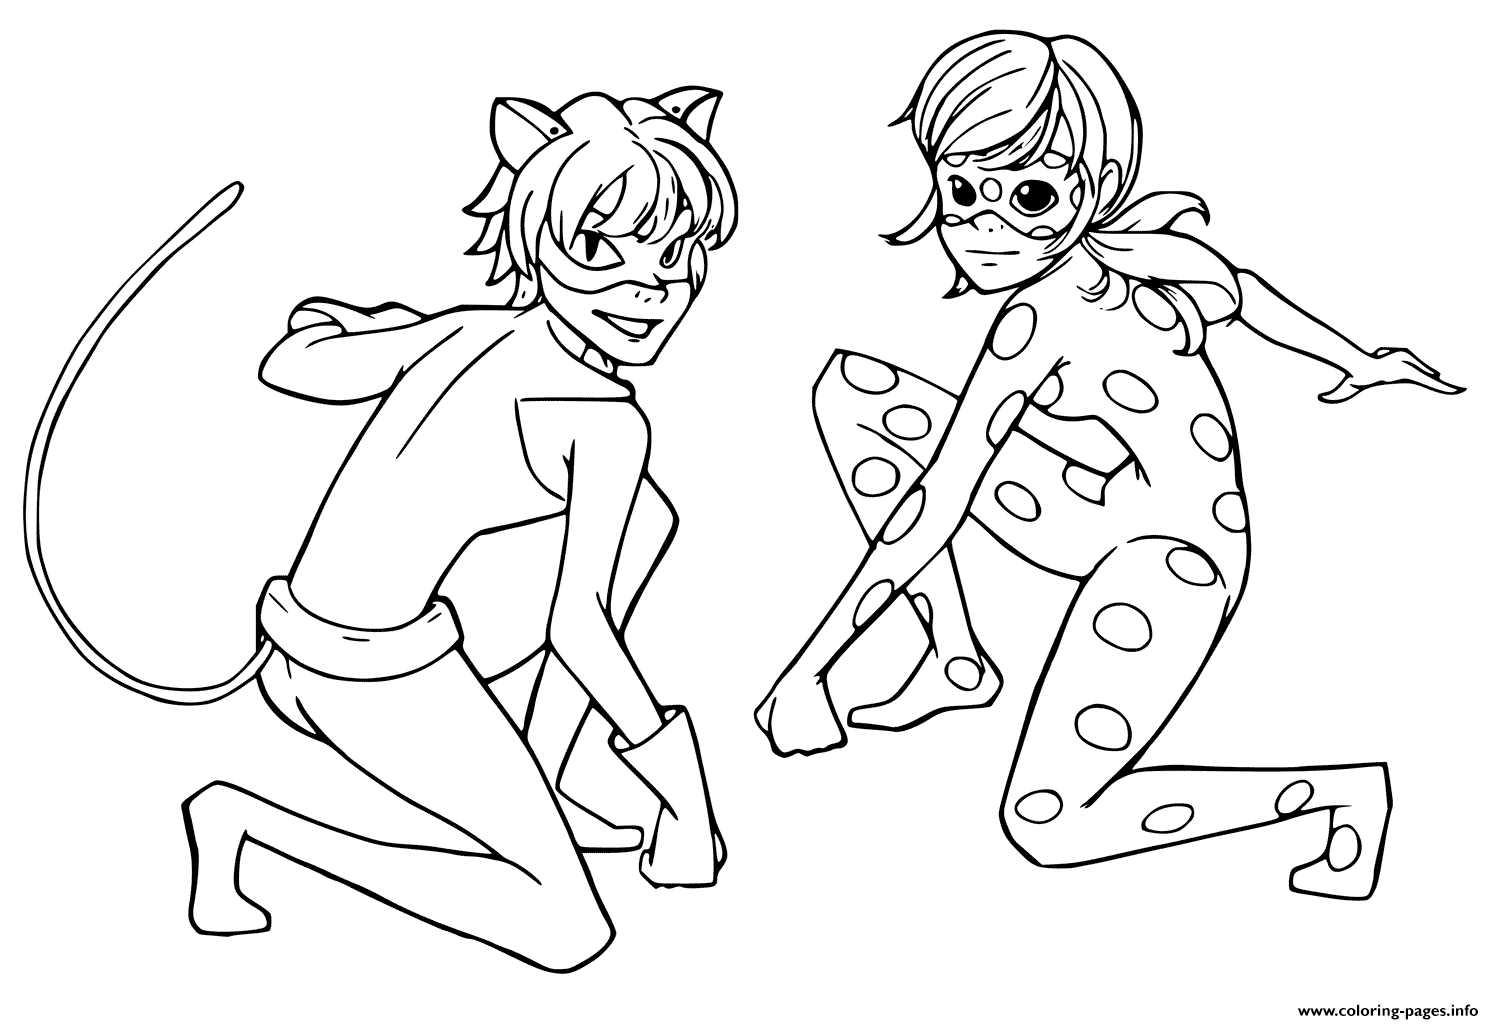 Miraculous Tales Of Ladybug Black Cat Coloring Pages Printable tout Coloriage Miraculous